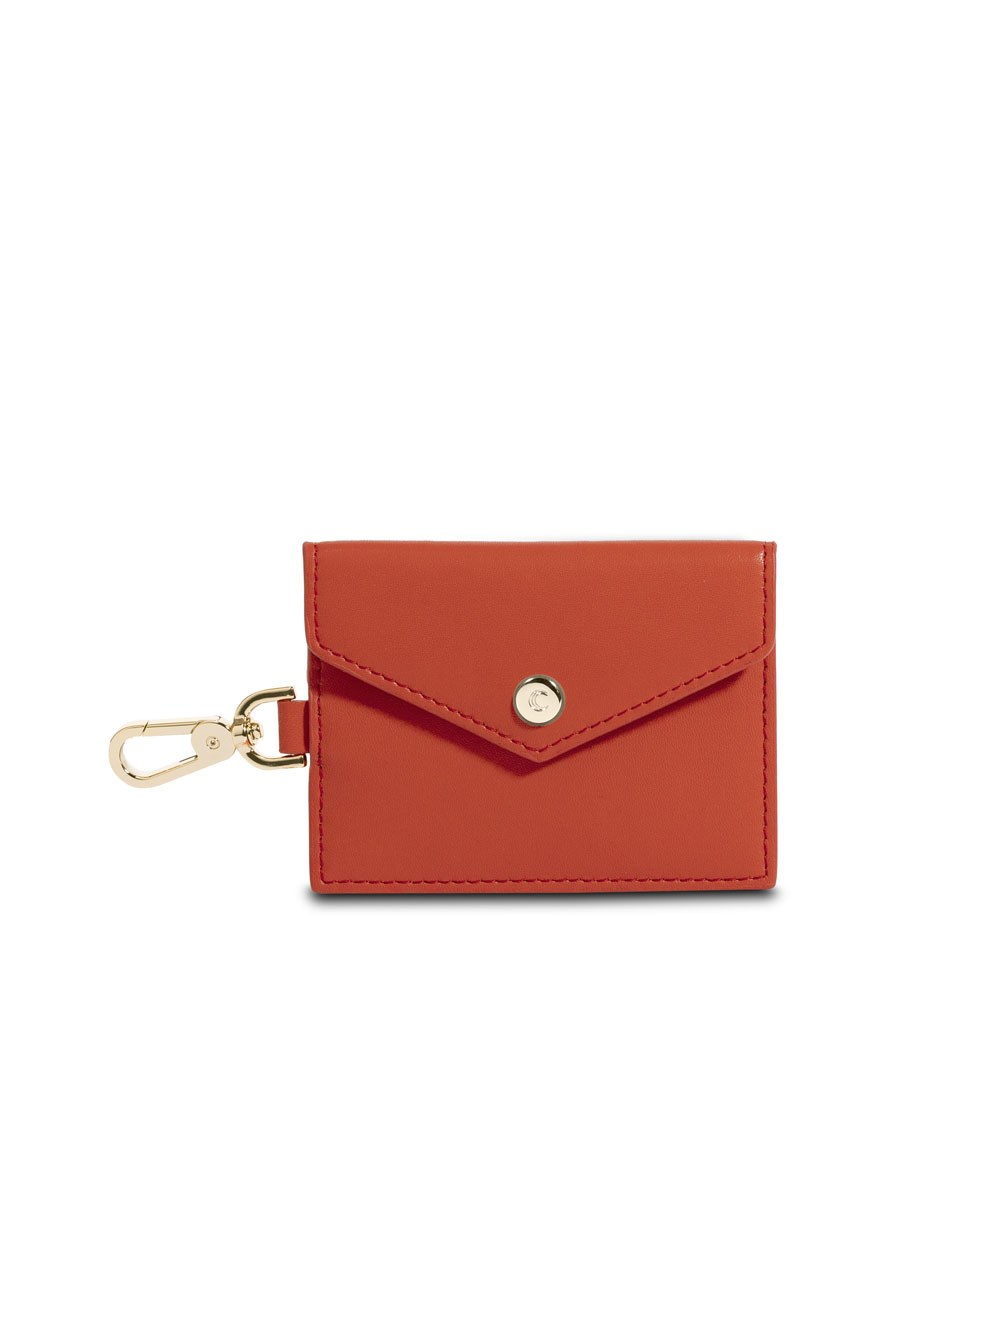 Card Holder With Clip - Tangerine Tango